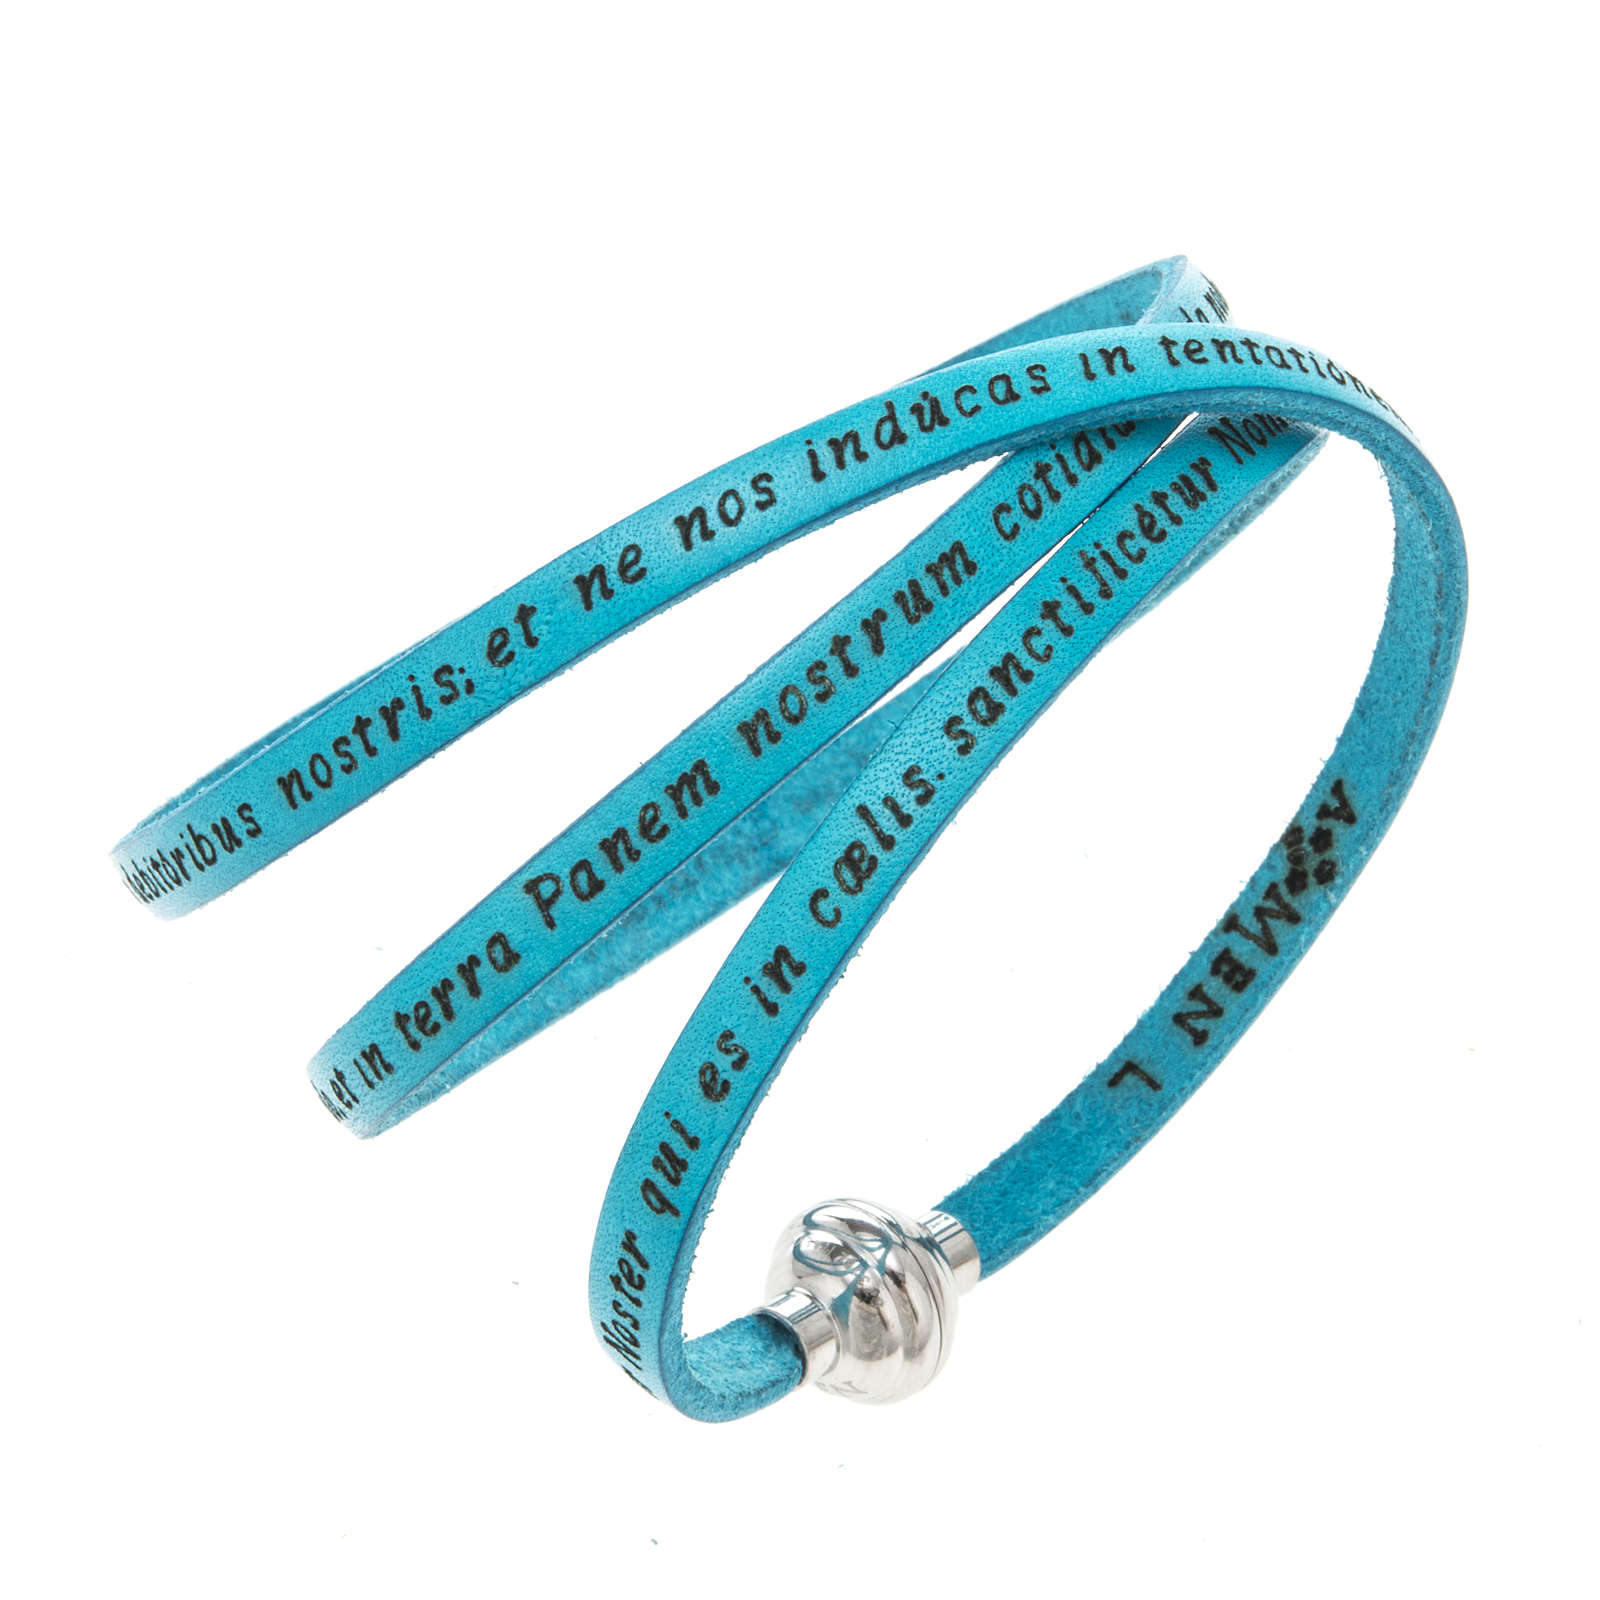 Amen Bracelet in turquoise leather Our Father LAT 4